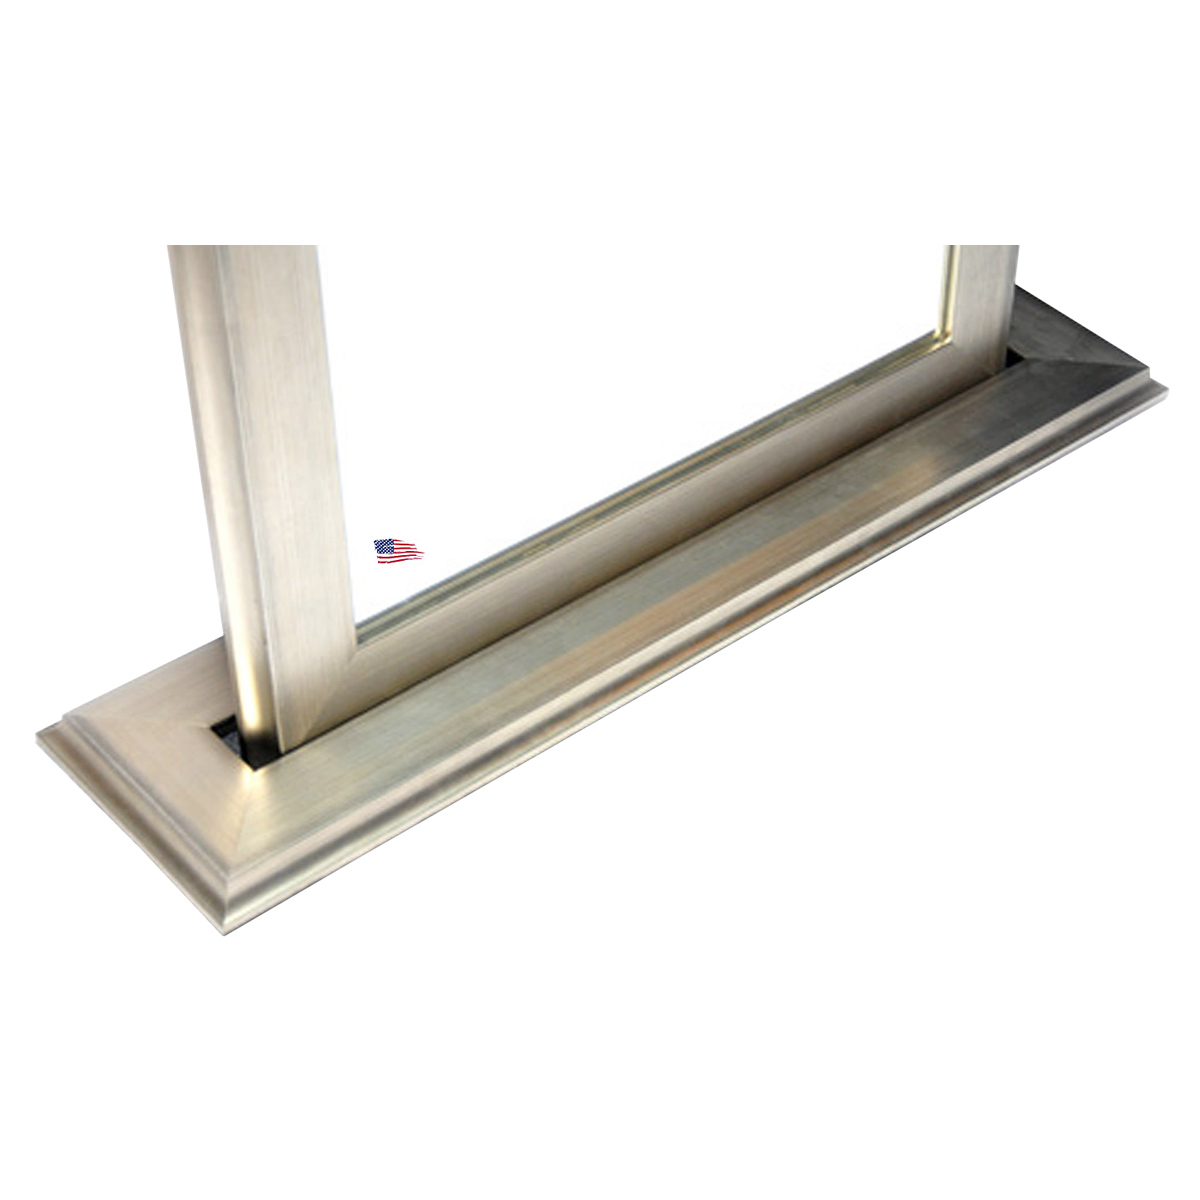 Floor mirror brushed silver frame dcg stores for Silver framed floor mirror